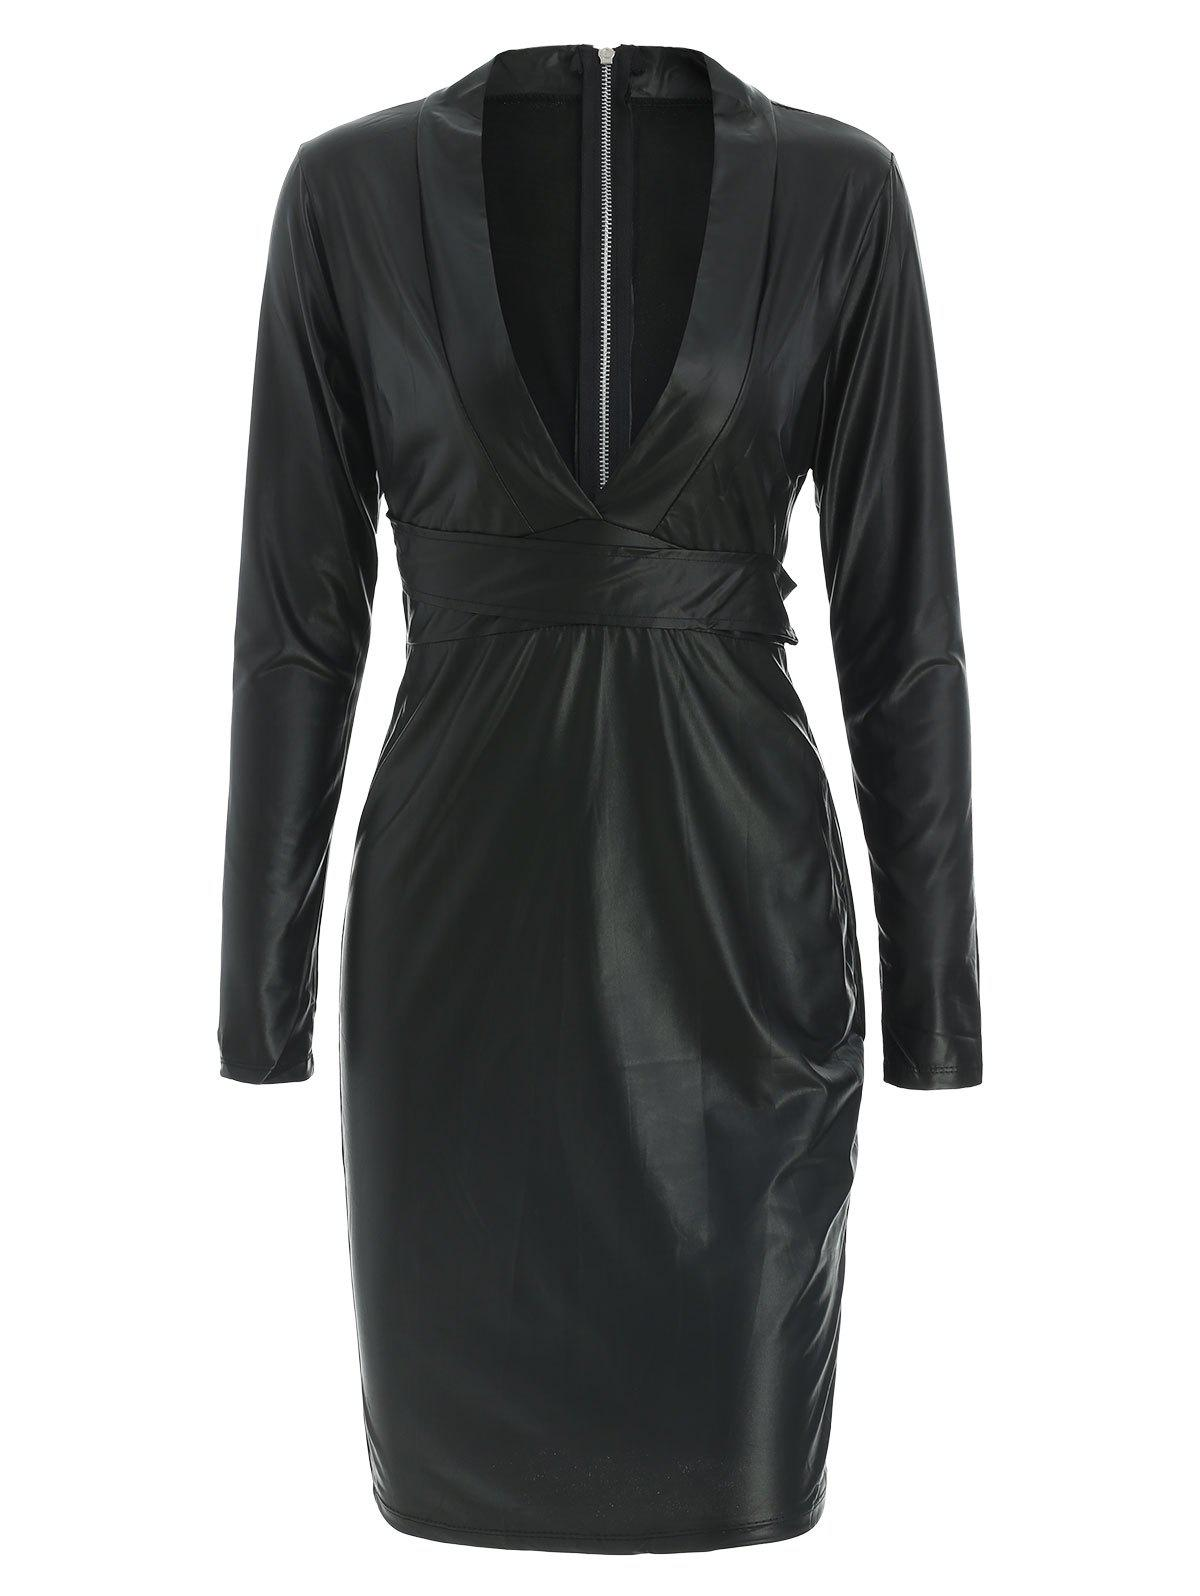 Unique Plunging Neck Faux Leather Long Sleeve Bandage Dress